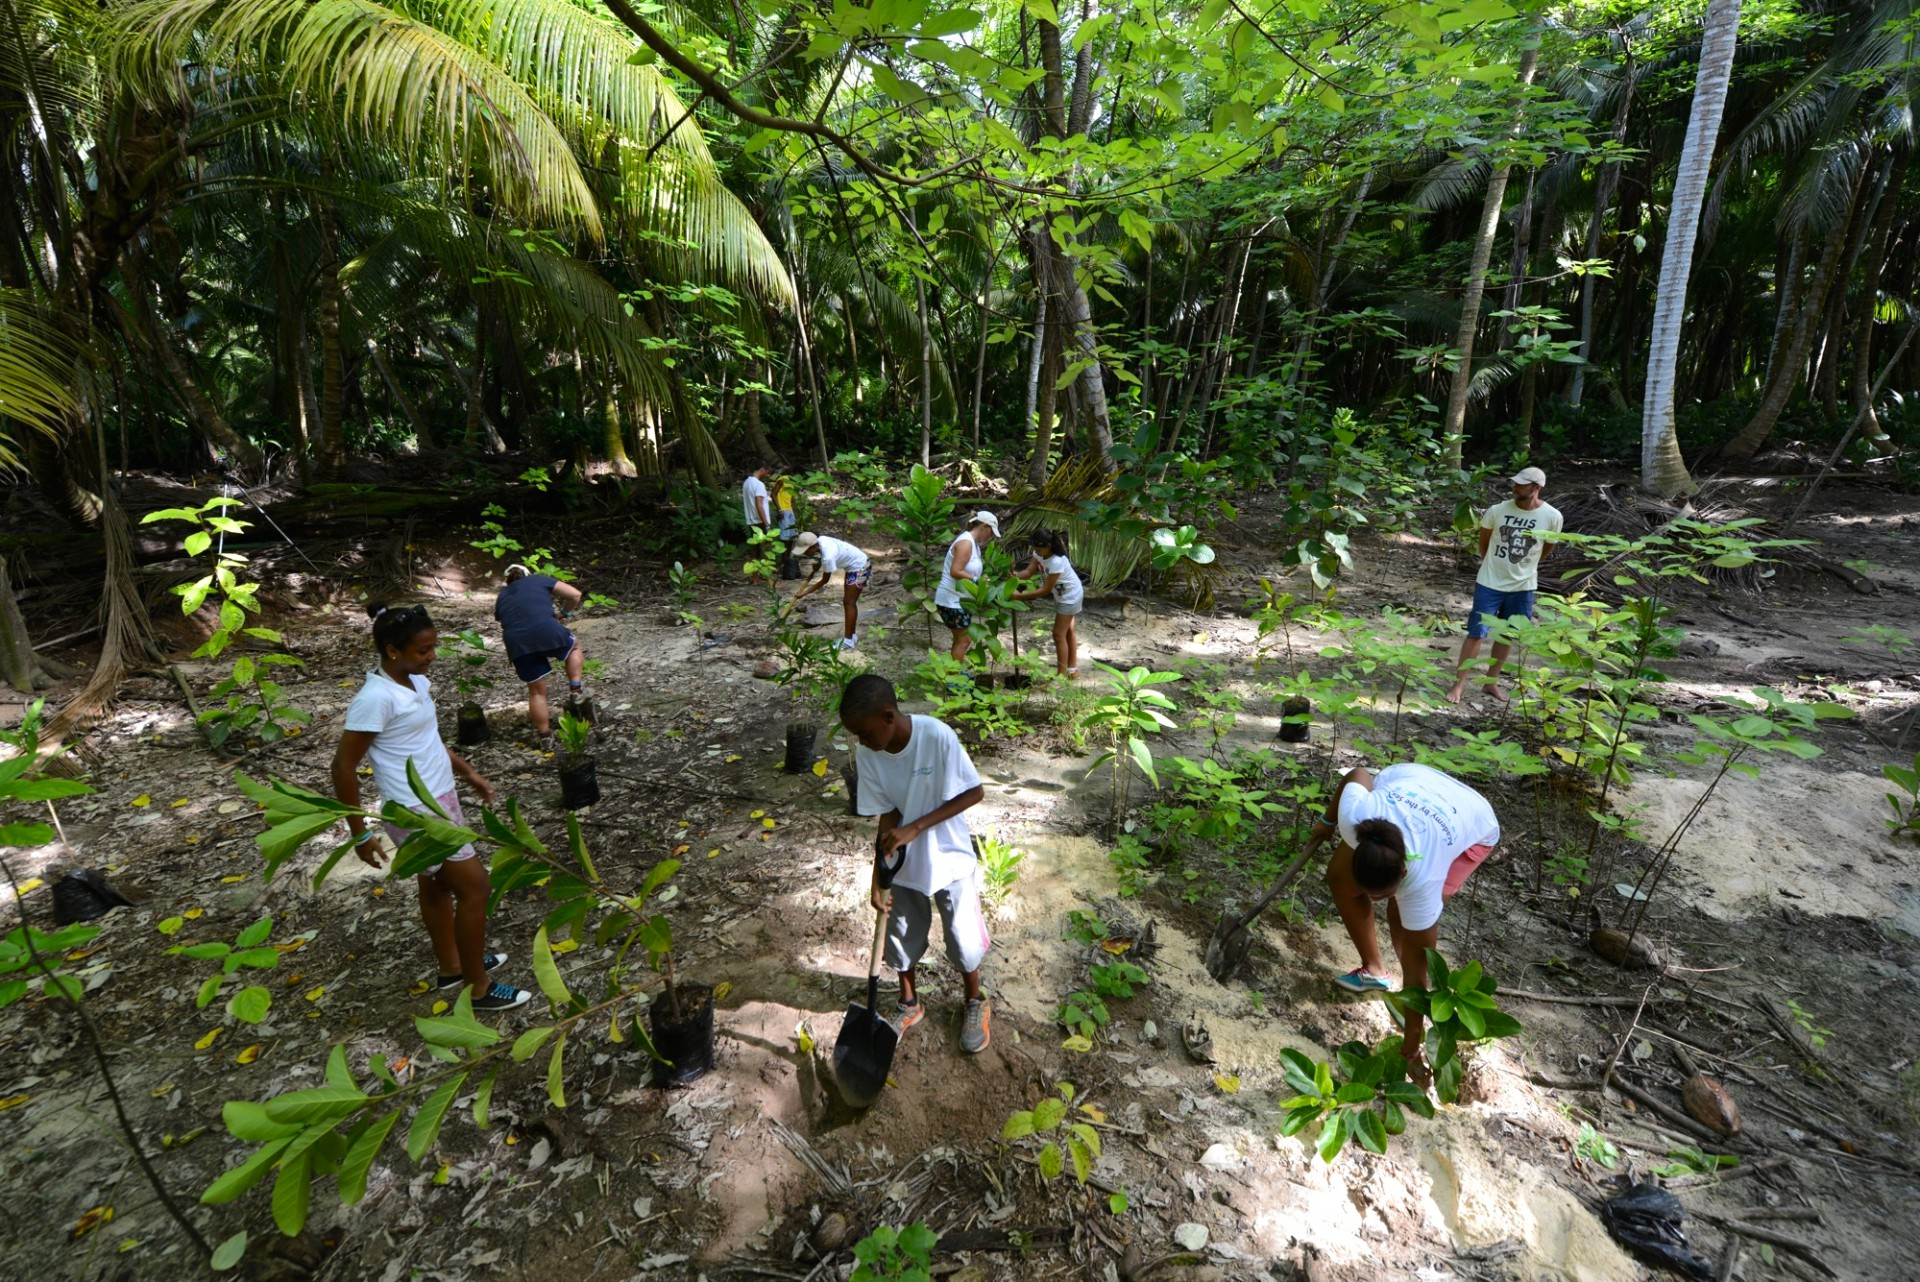 Teenagers plant indigenous saplings during the D'Arros Experience. In an effort to inspire young Seychellois and share D'Arros and St Joseph with them, the Save Our Seas Foundation ran these environmental education camps for two years. Photo by Michael Scholl | © Save Our Seas Foundation